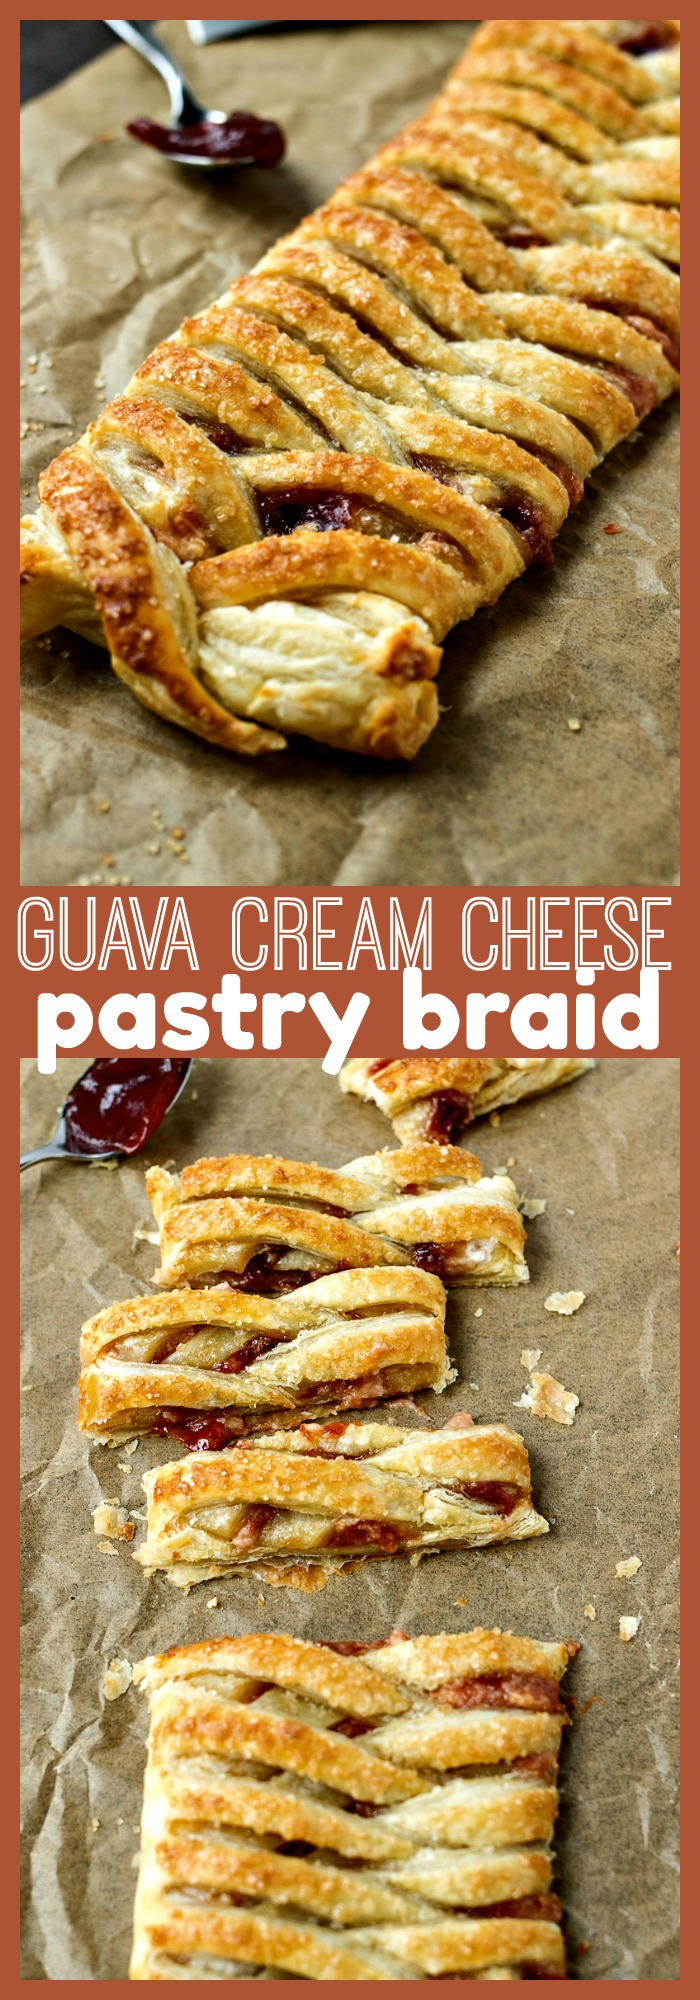 Guava Cream Cheese Pastry Braid photo collage